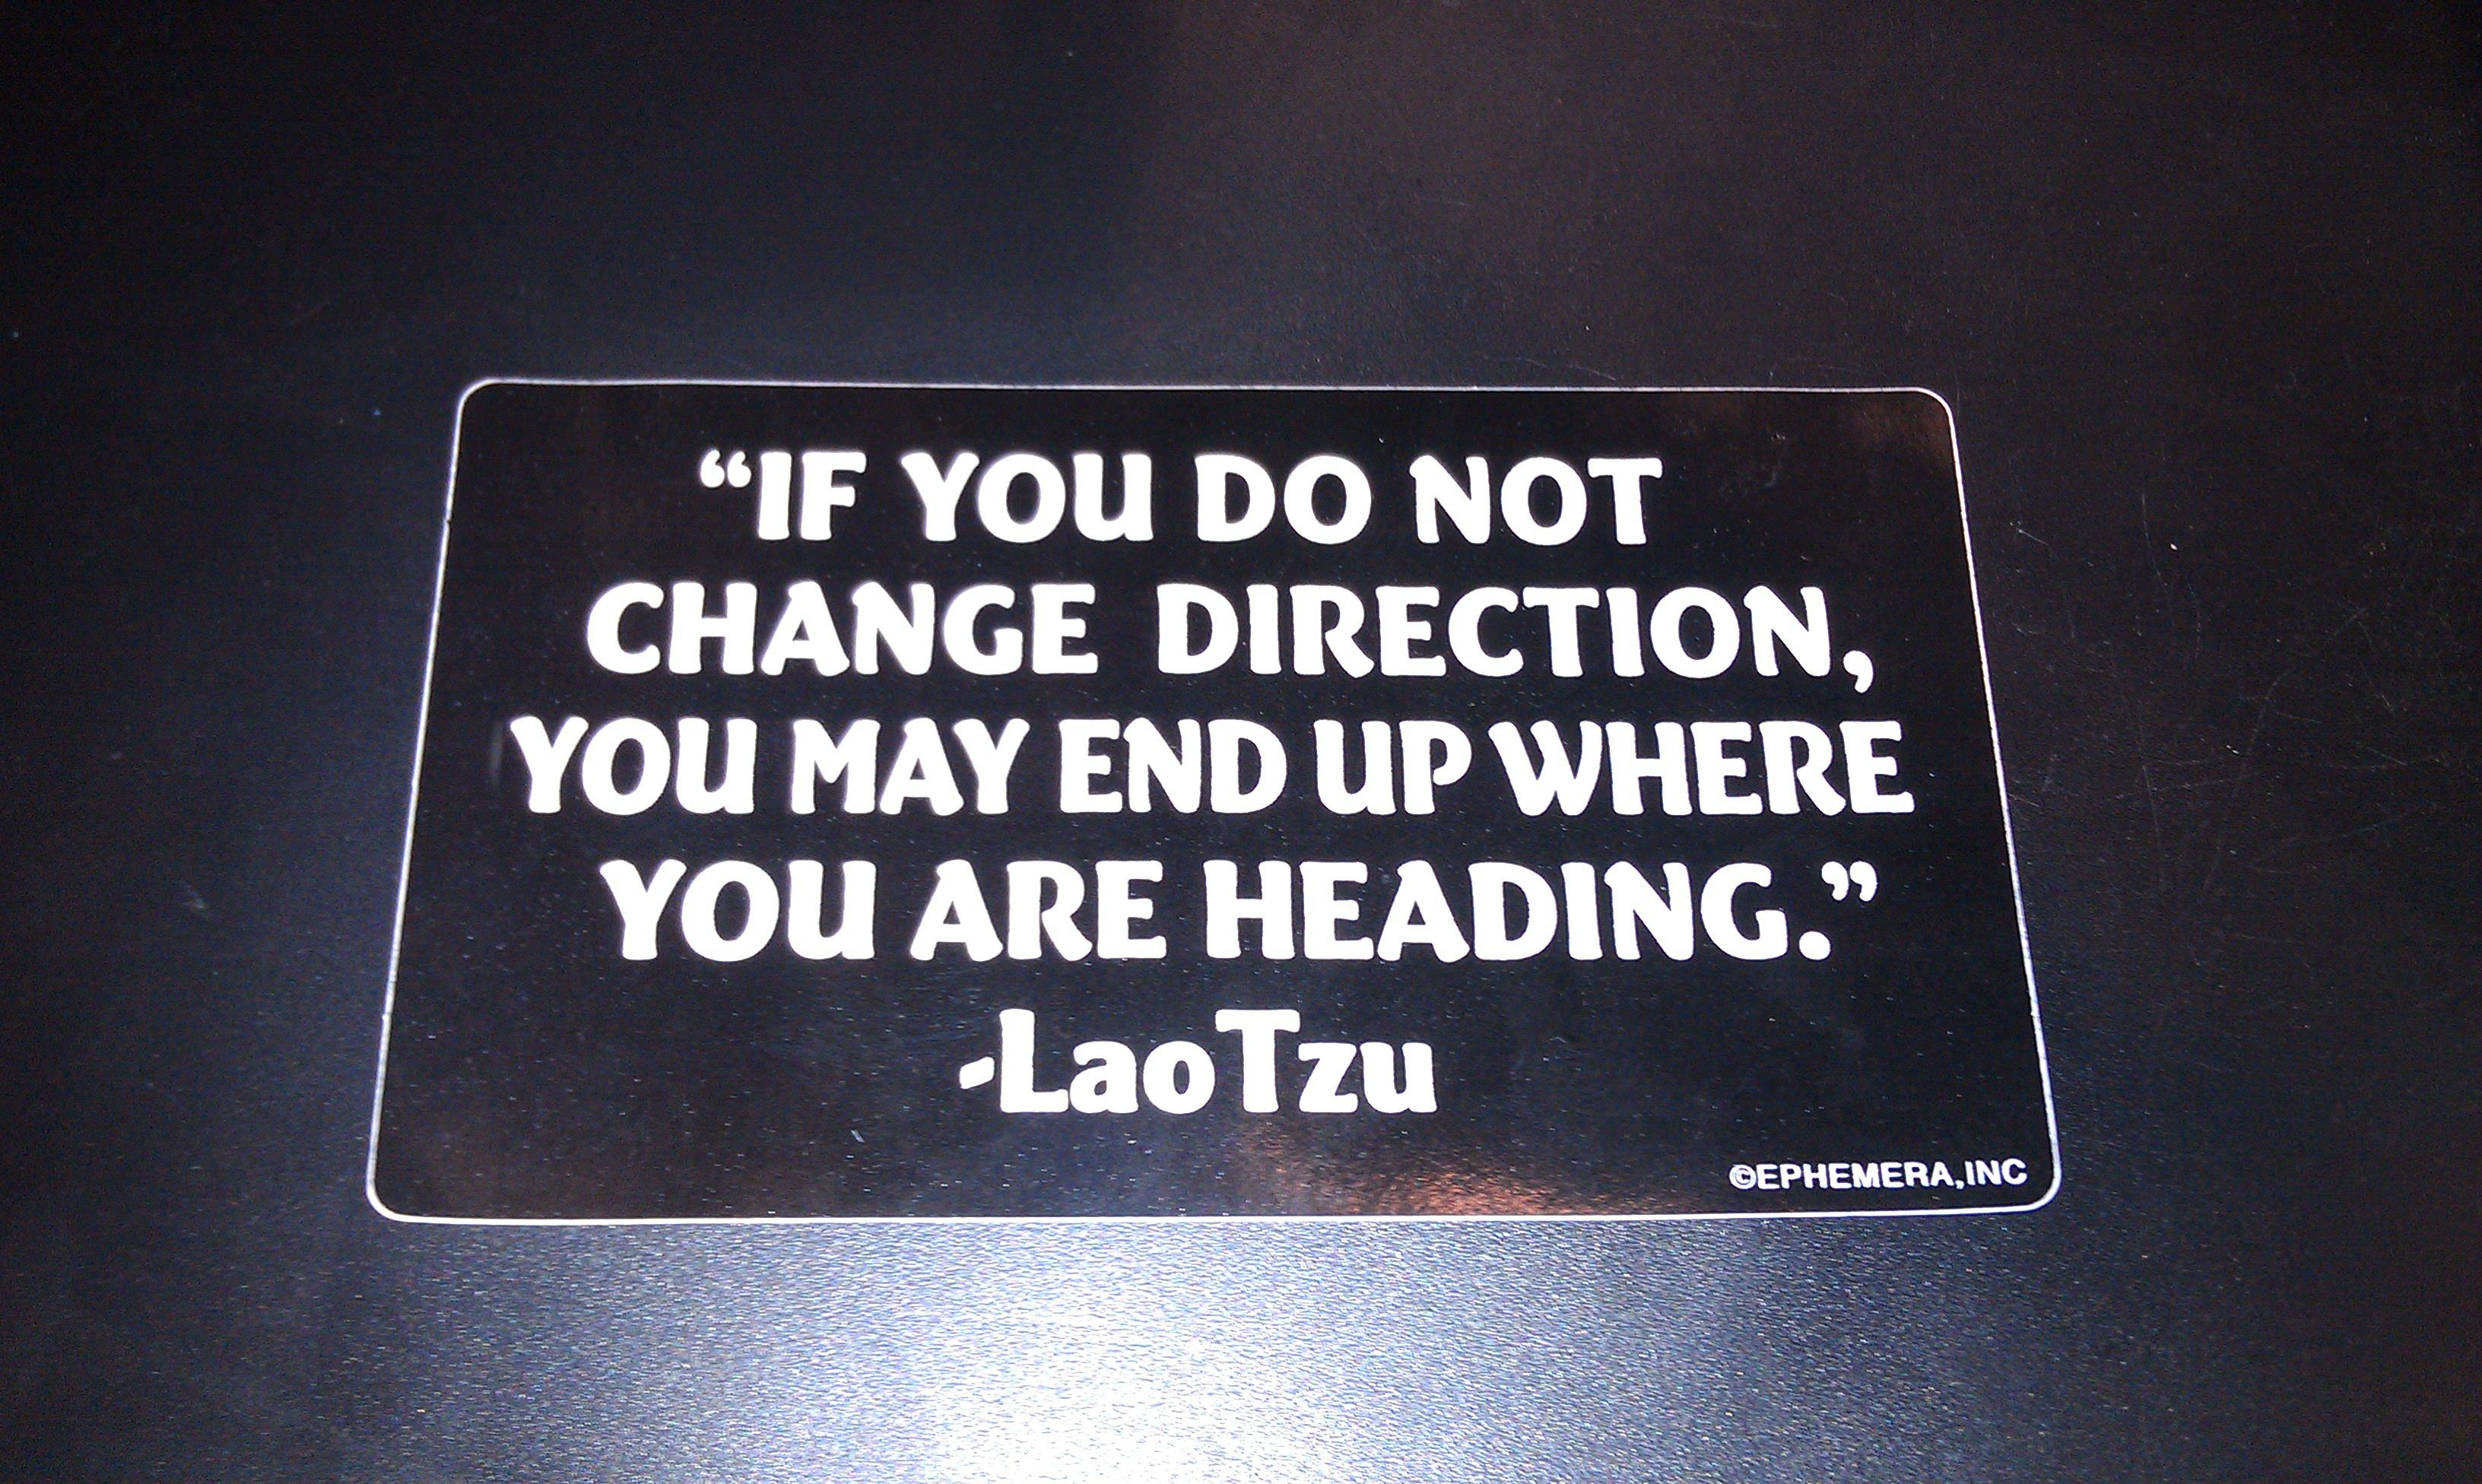 """OEPHEMERAJNC CHANGE maze-non You MAY END up WHERE  """"IF YOU DO NOT EHE DING """" ~ https://inspirational.ly"""